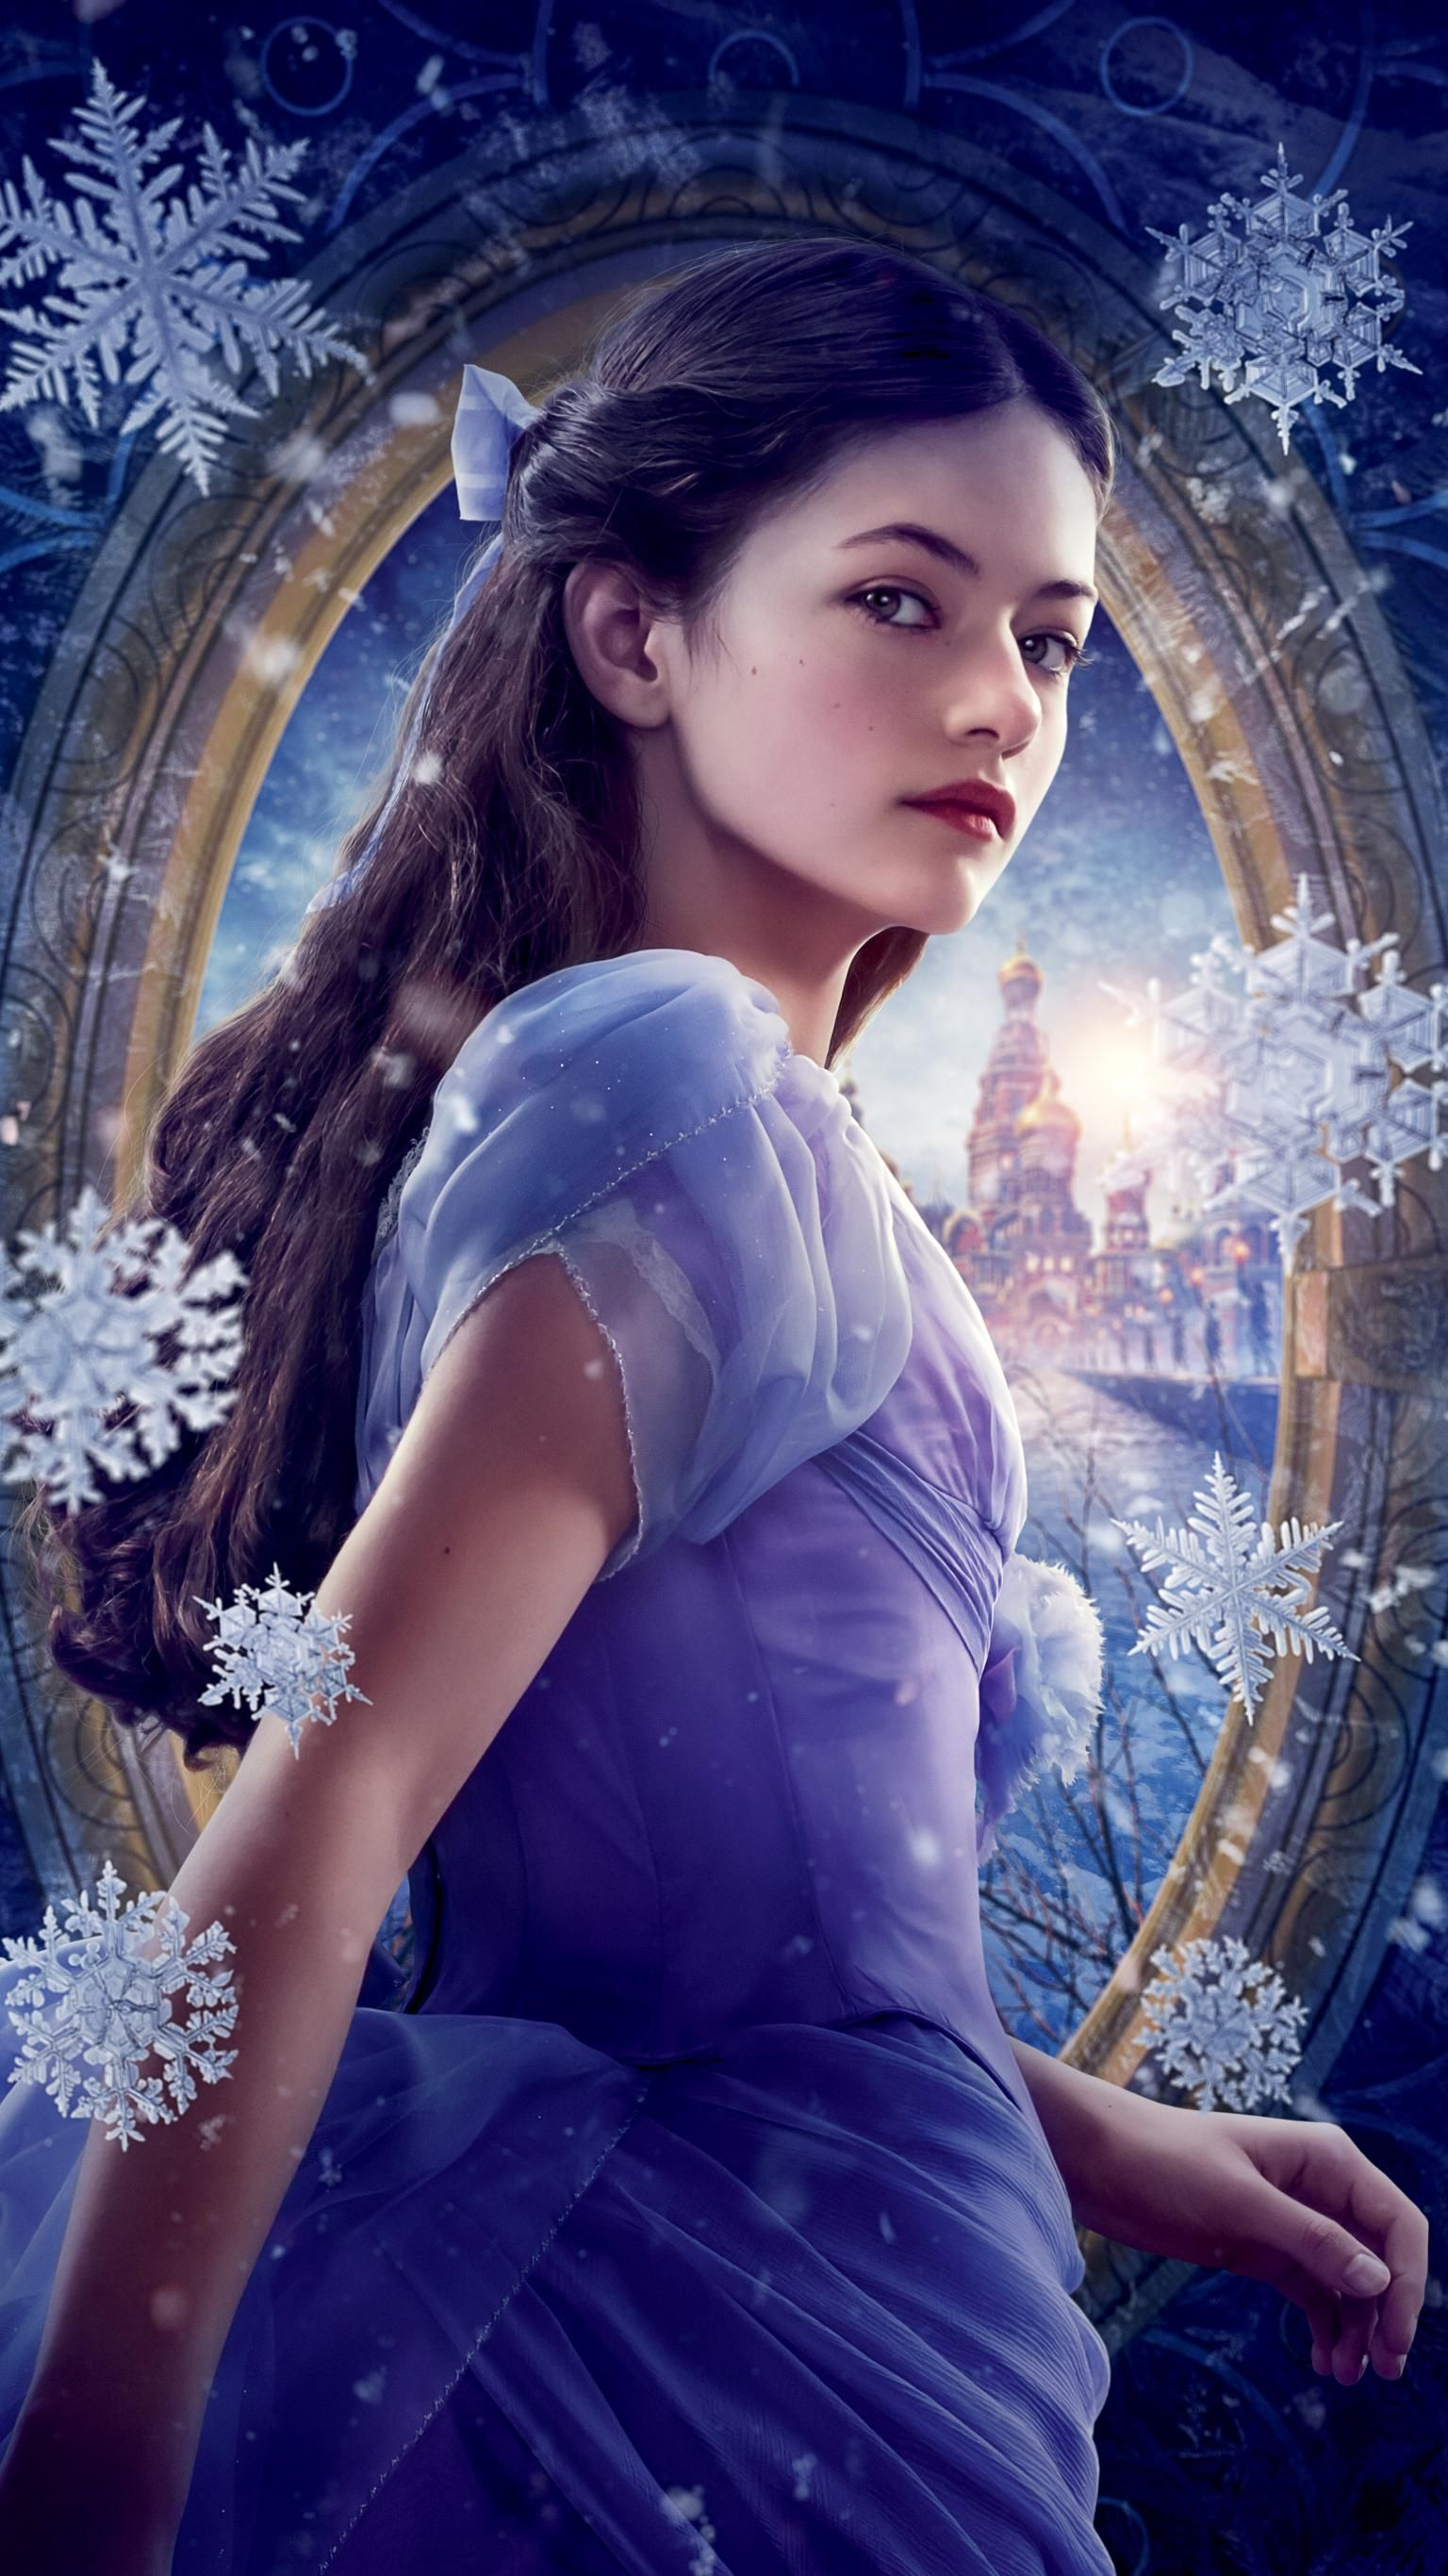 The Nutcracker and the Four Realms (2018) Phone Wallpaper in 2019 ... cd7cbc5cba85